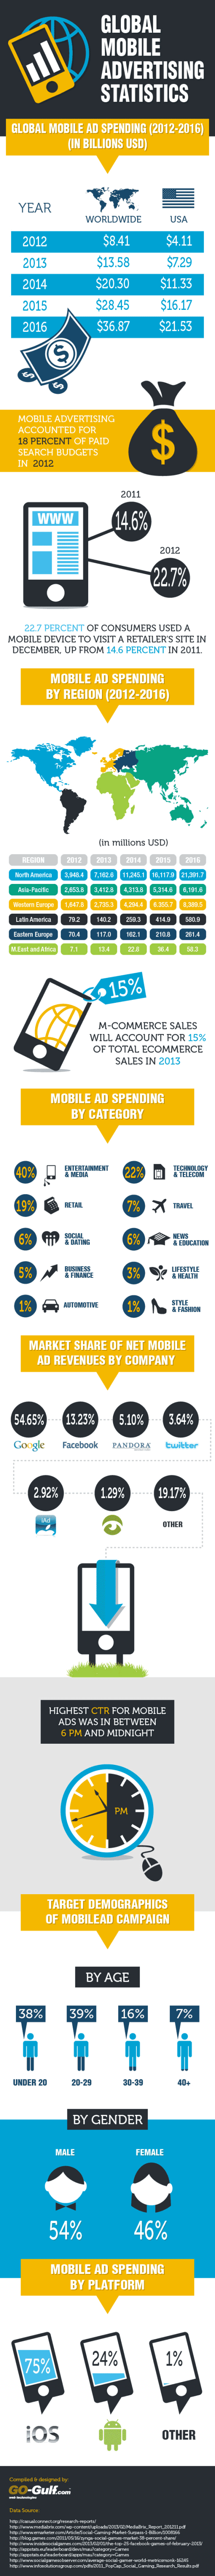 global-mobile-advertising--statistics-and-trends-infographic_518c98fbe18f8